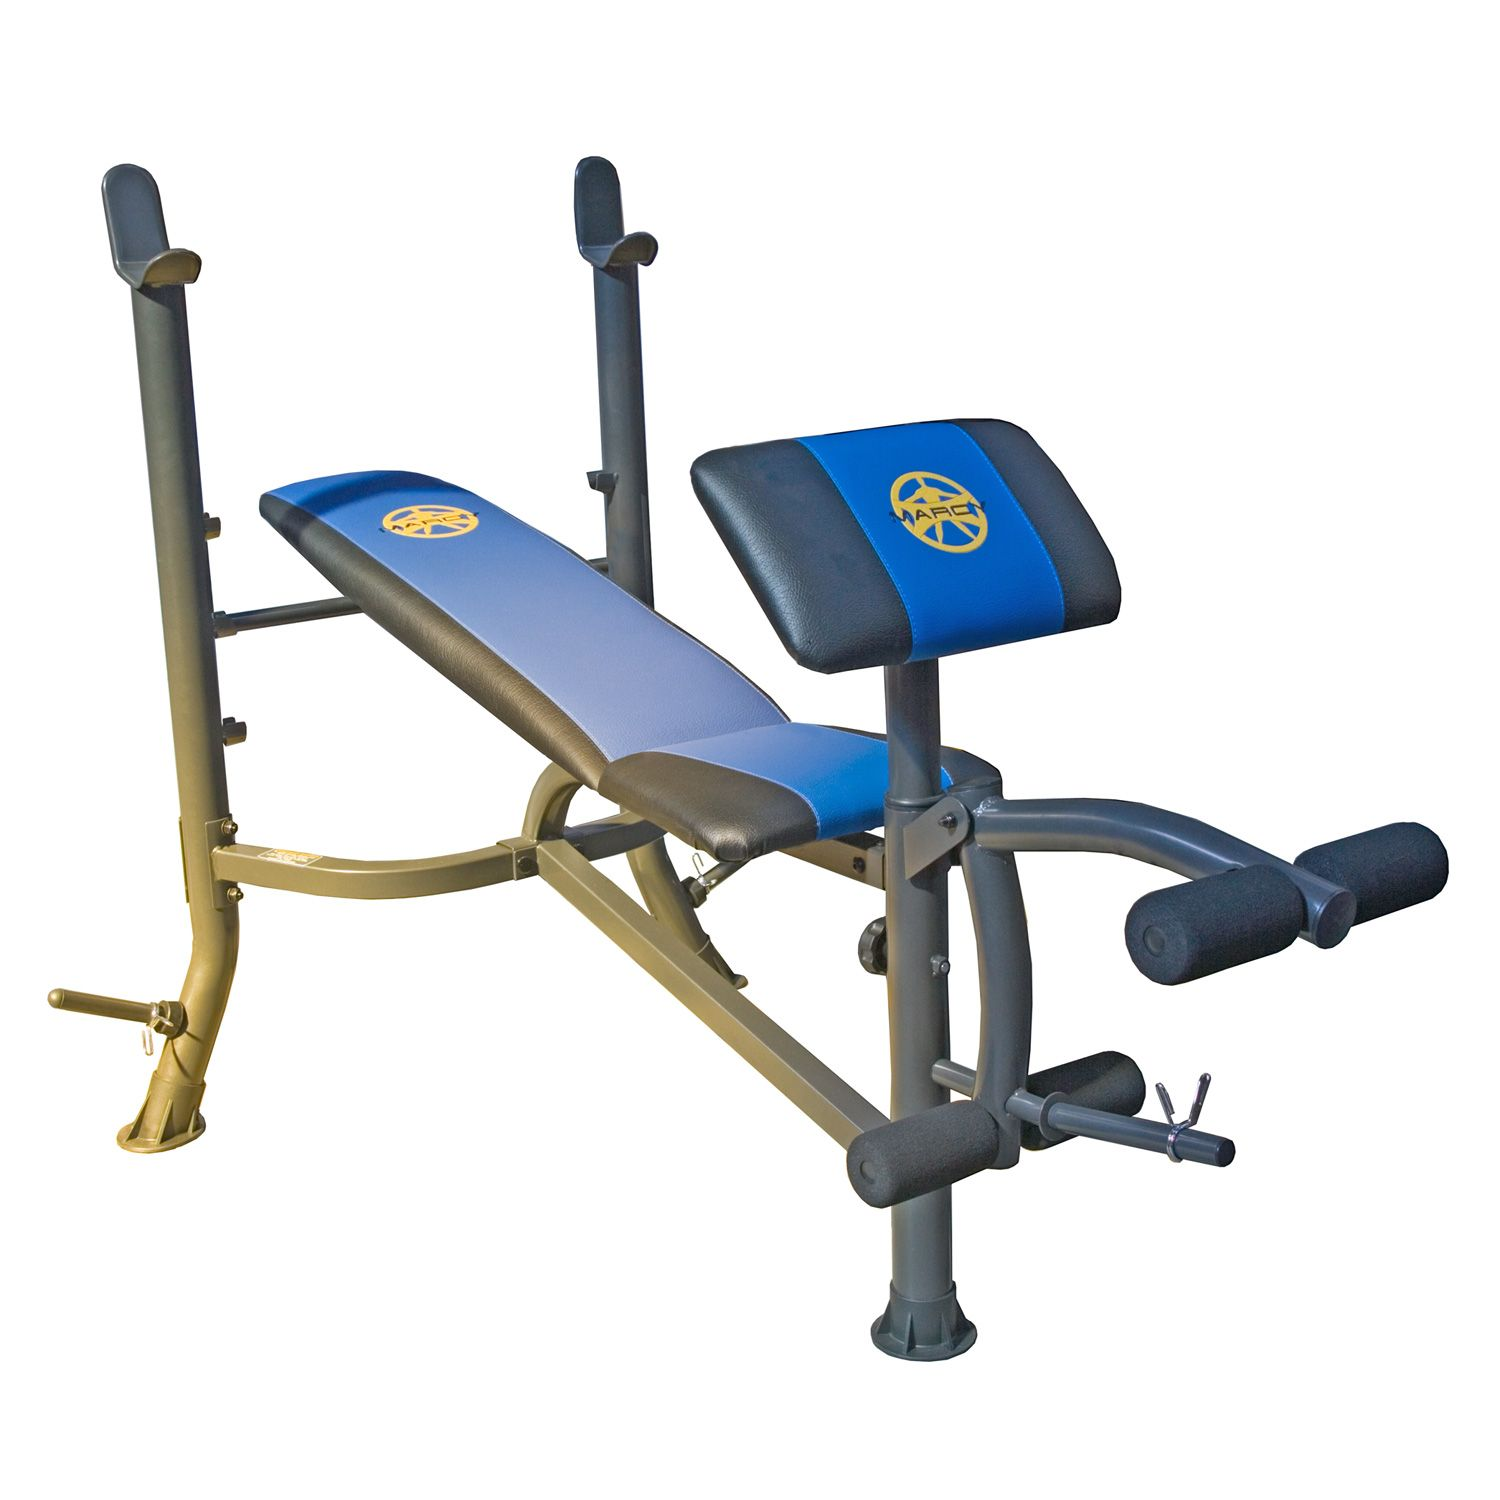 Marcy wm367 weight bench ebay Weight bench and weights